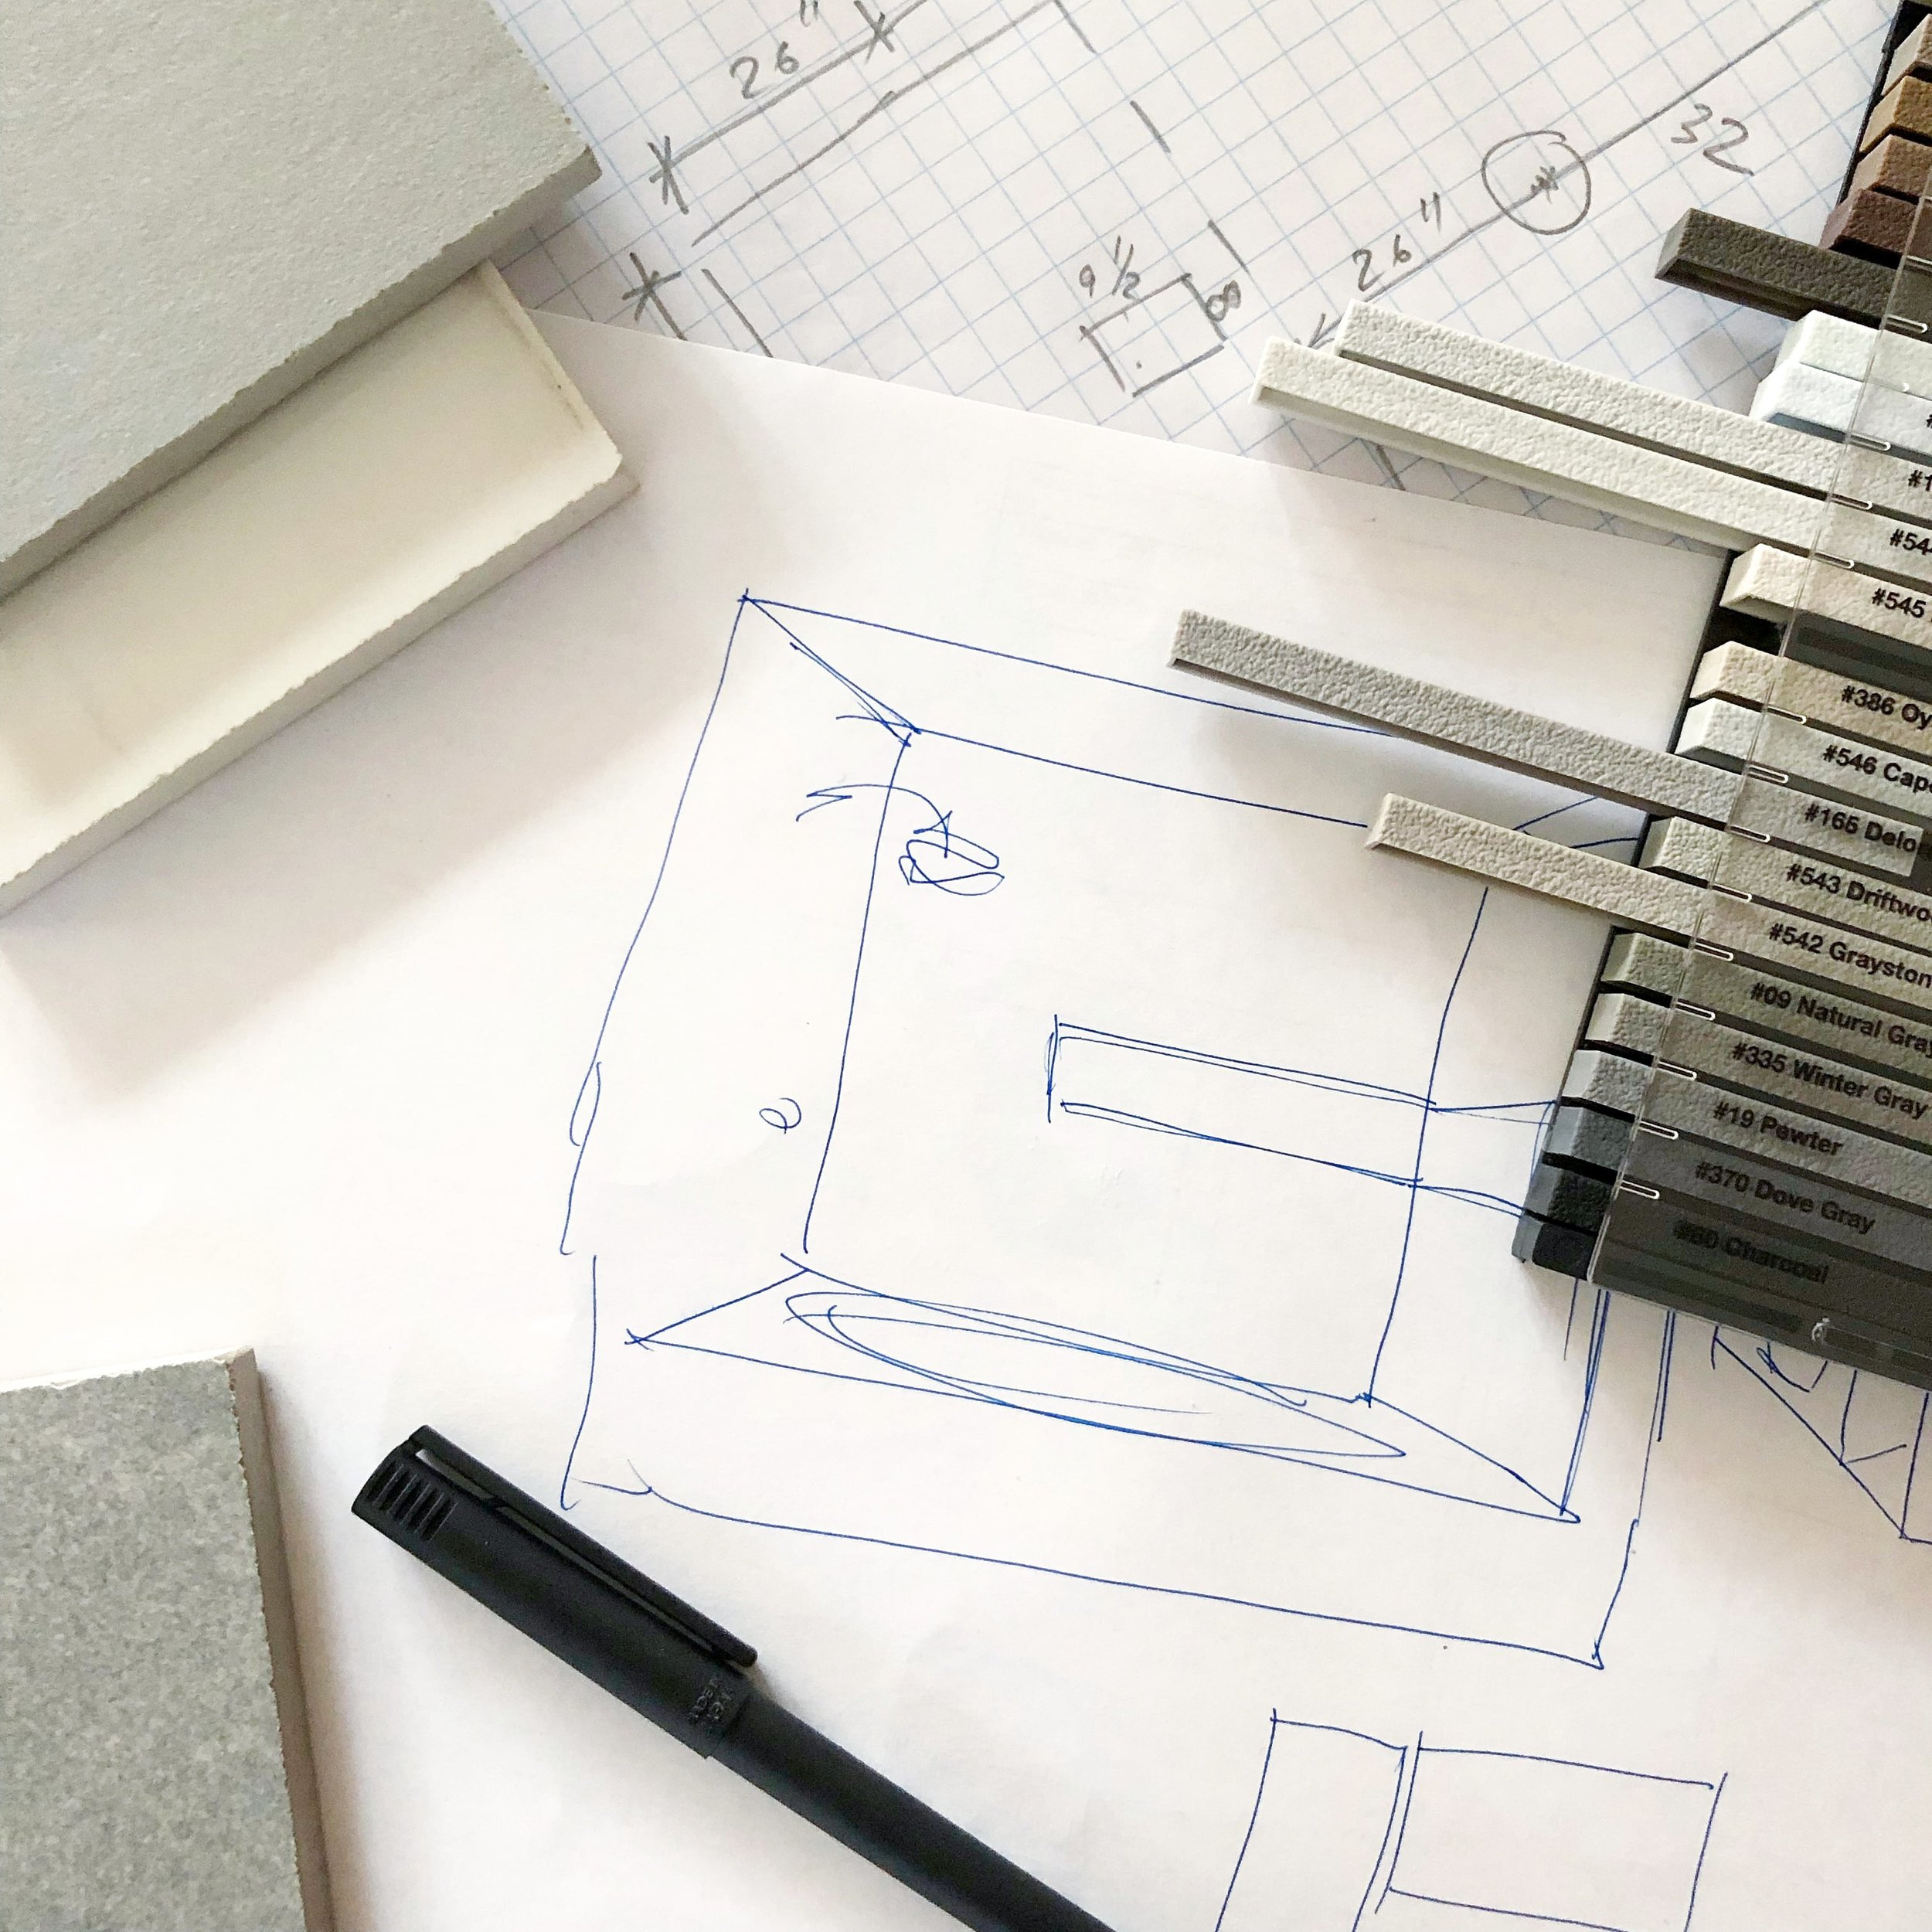 One of the many brainstorming sessions - this one was for a bathroom remodeling project